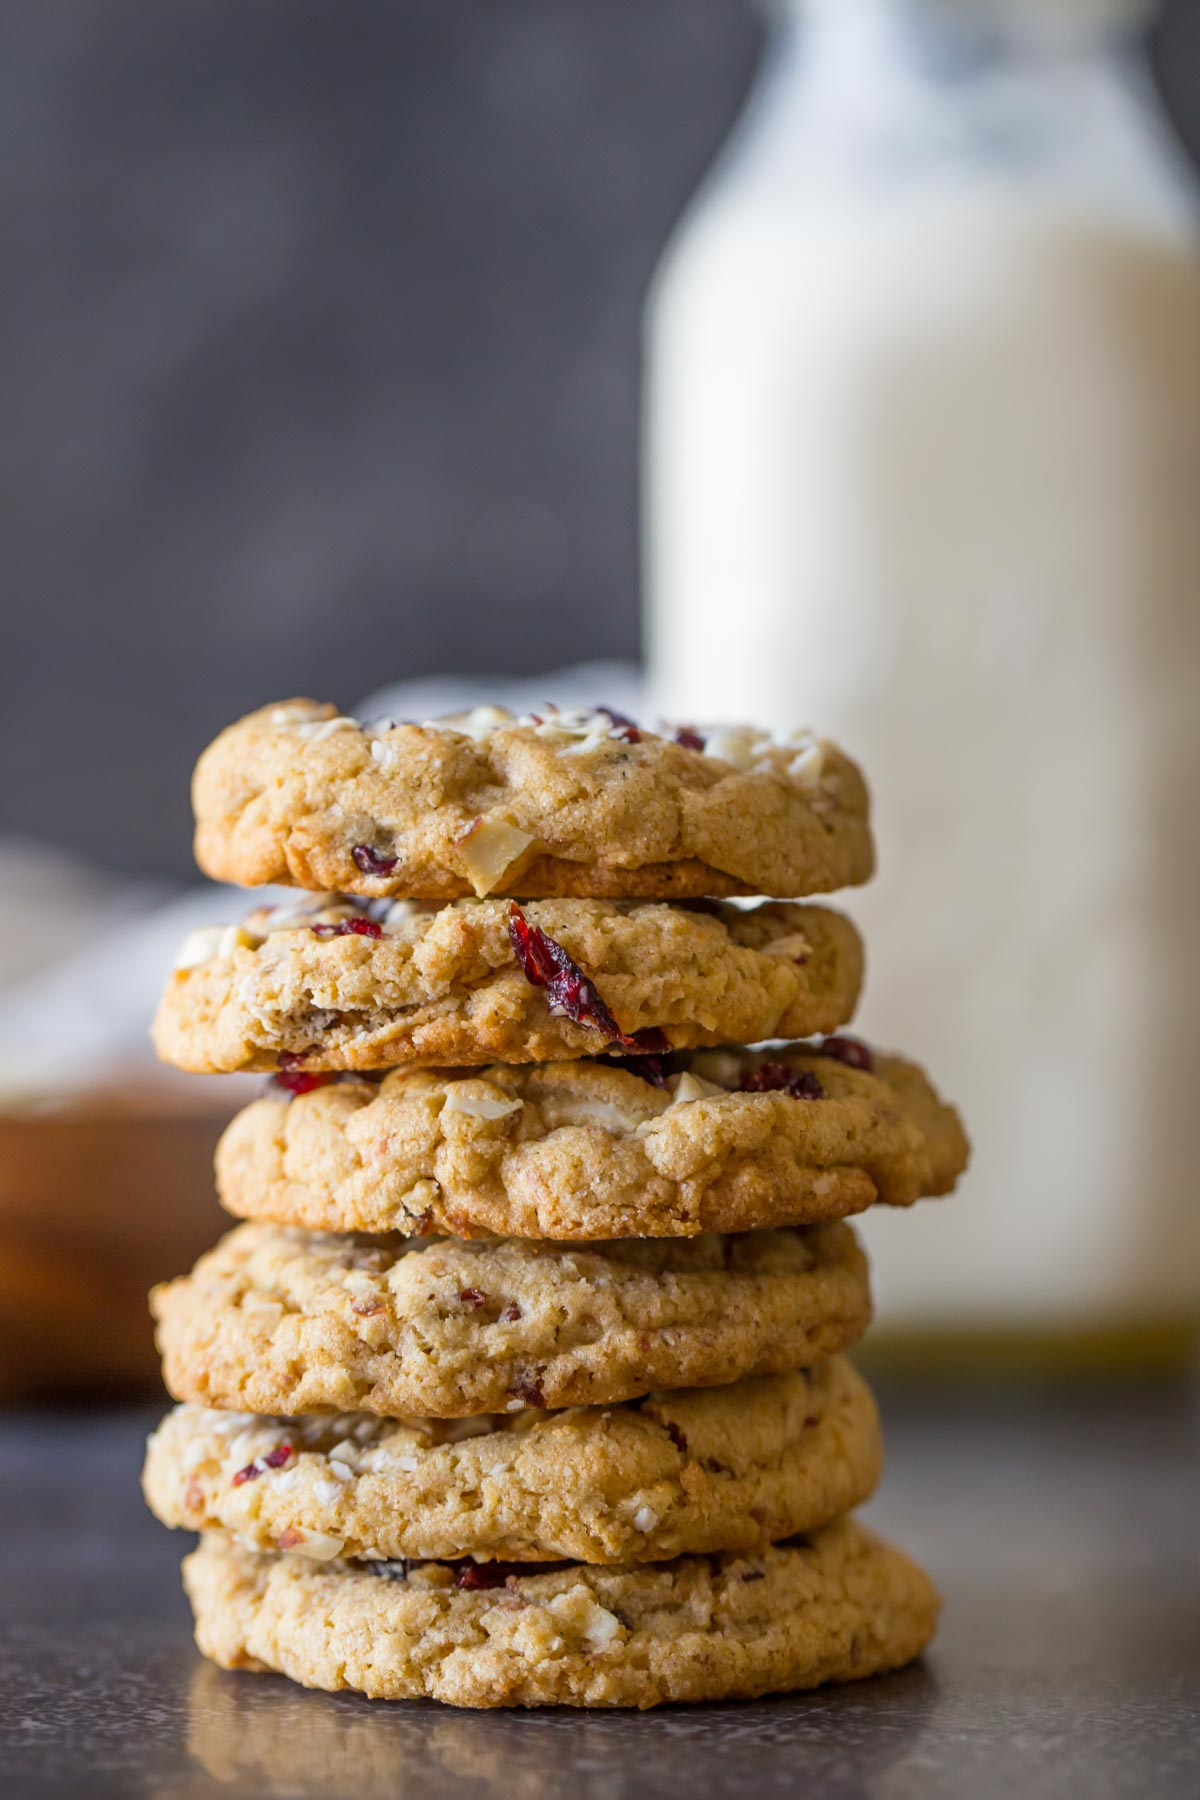 Cranberry Almond White Chocolate Chunk Cookies stacked in a pile of six, with a glass jar of milk in the background.